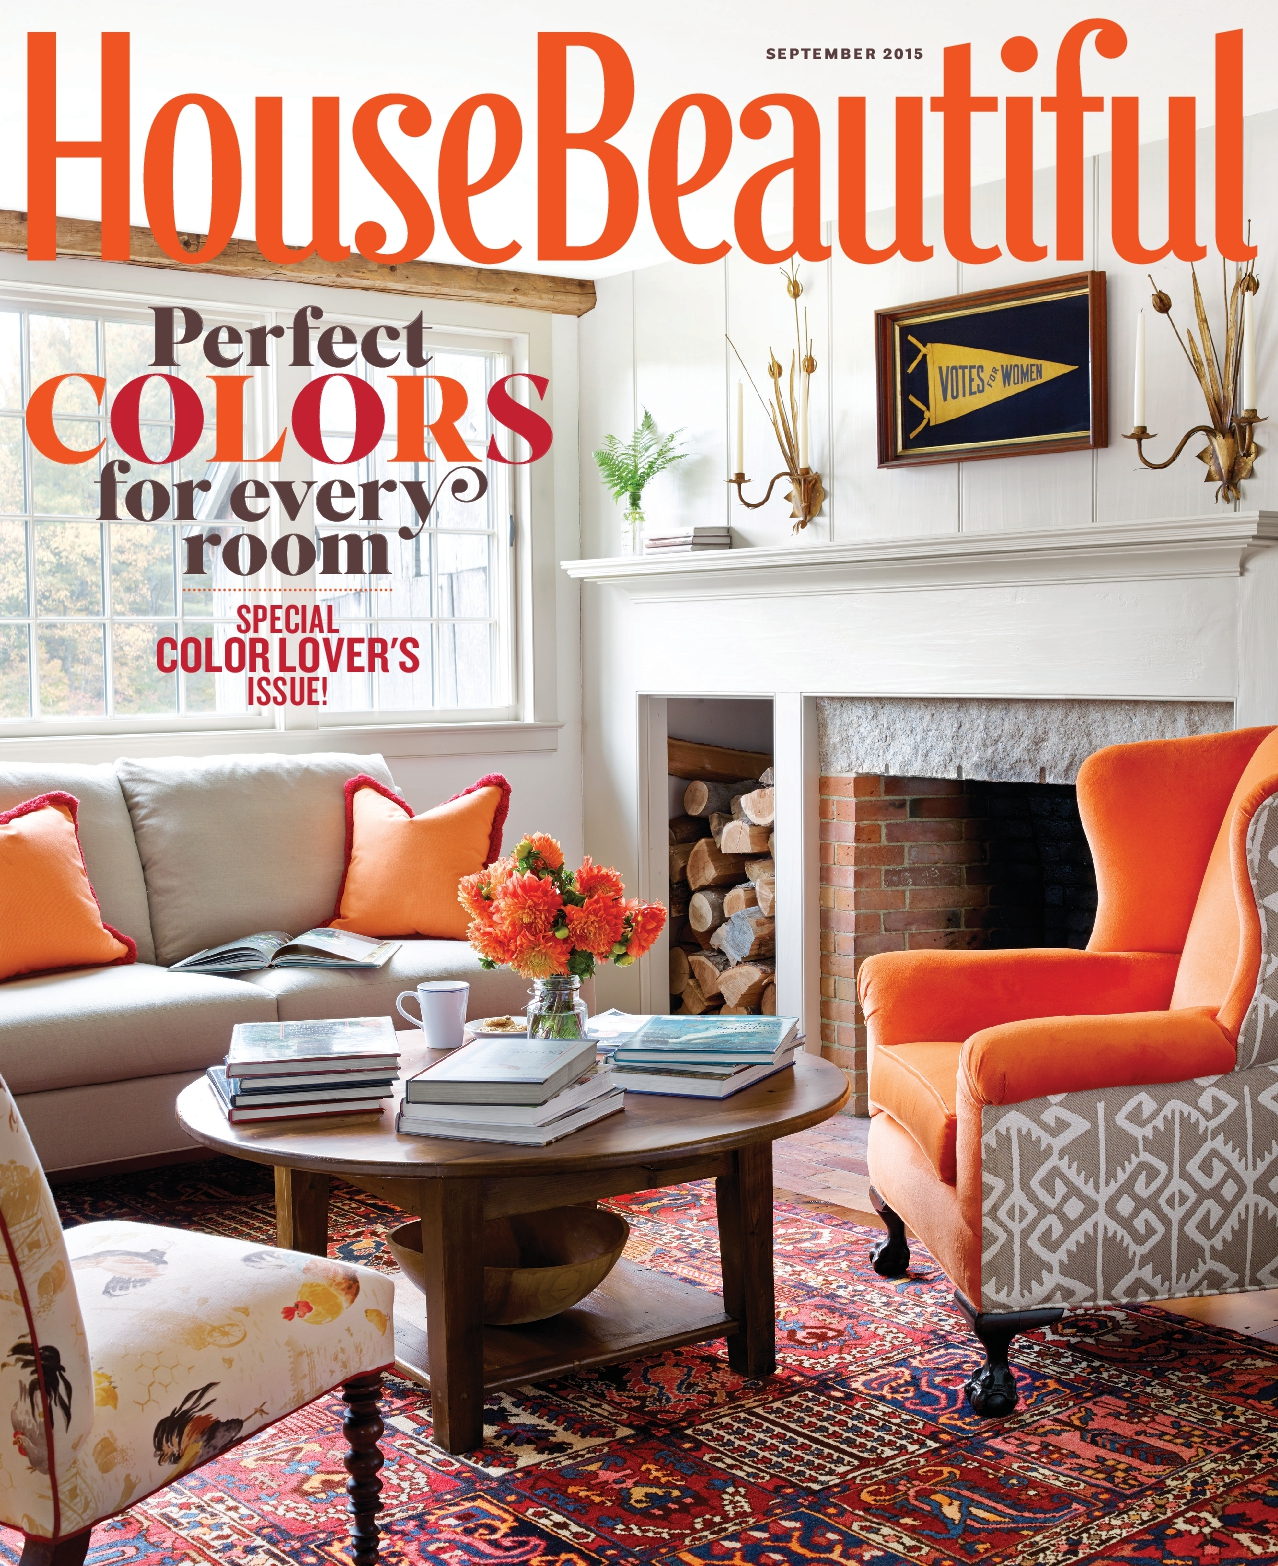 design guide interior magazines homes beautiful